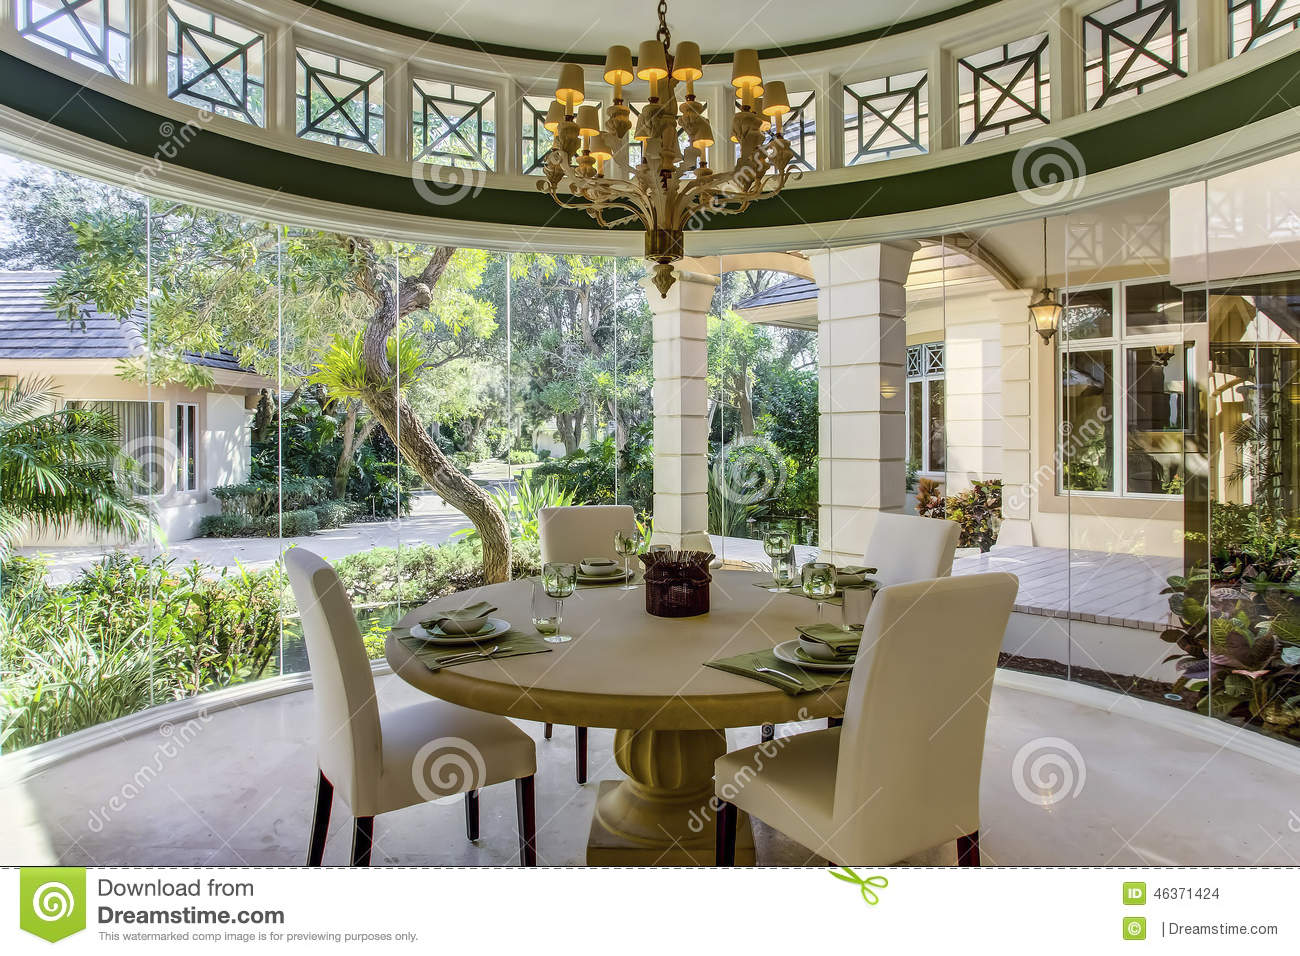 Luxury formal dining room - Florida Luxury Home Formal Dining Room Stock Images